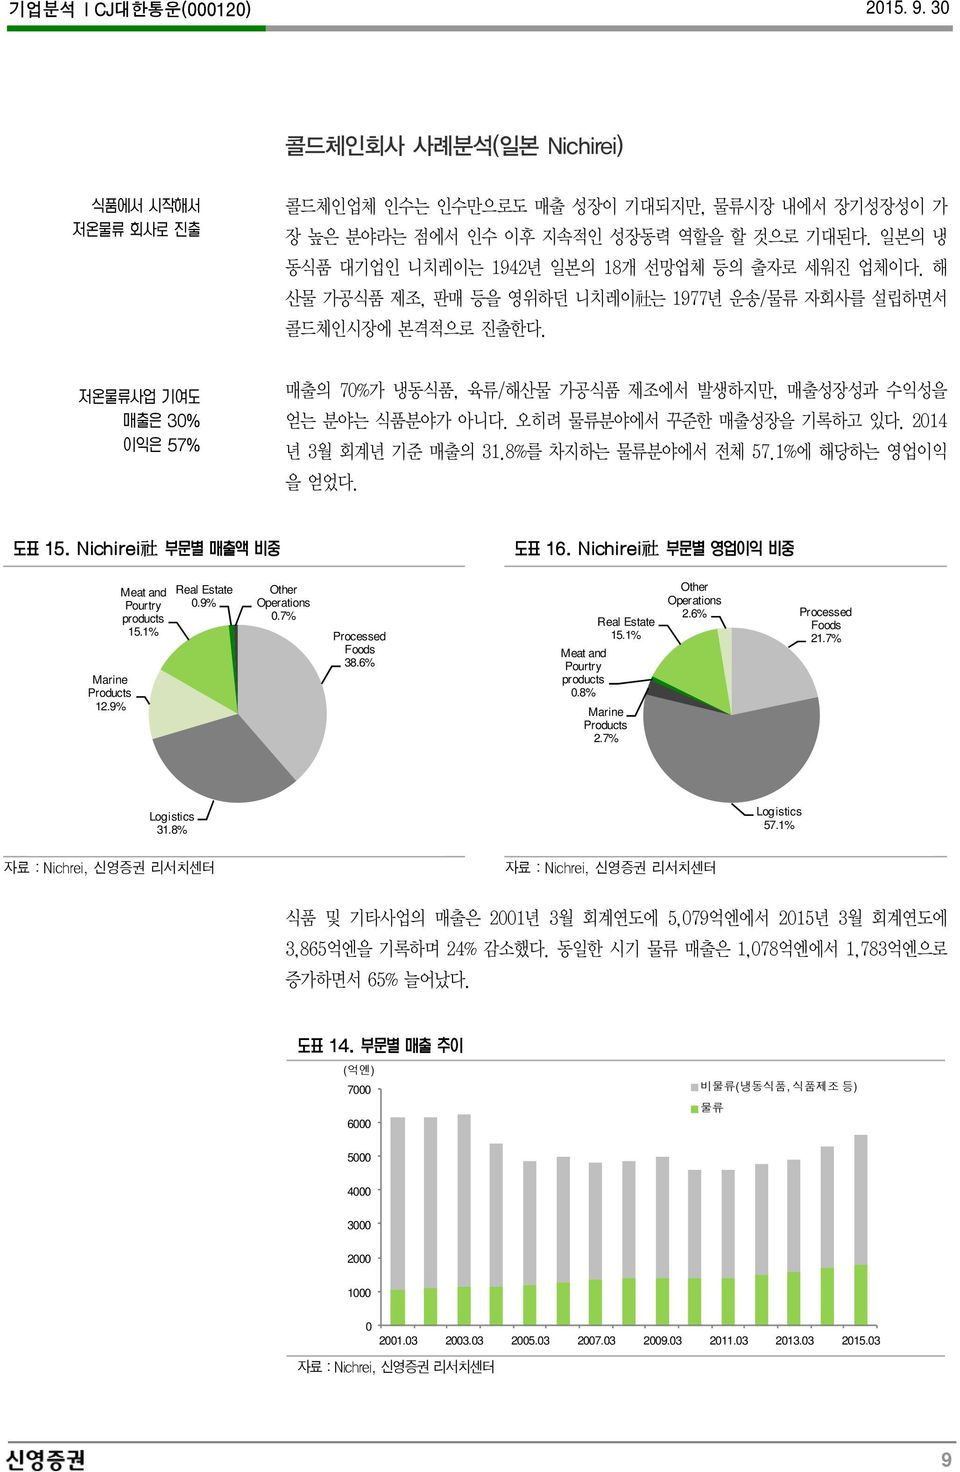 8%를 차지하는 물류분야에서 전체 57.1%에 해당하는 영업이익 을 얻었다. 社 社 Marine Products 12.9% Meat and Pourtry products 15.1% Real Estate.9% Other Operations.7% 2.6% Processed Real Estate Foods 15.1% 21.